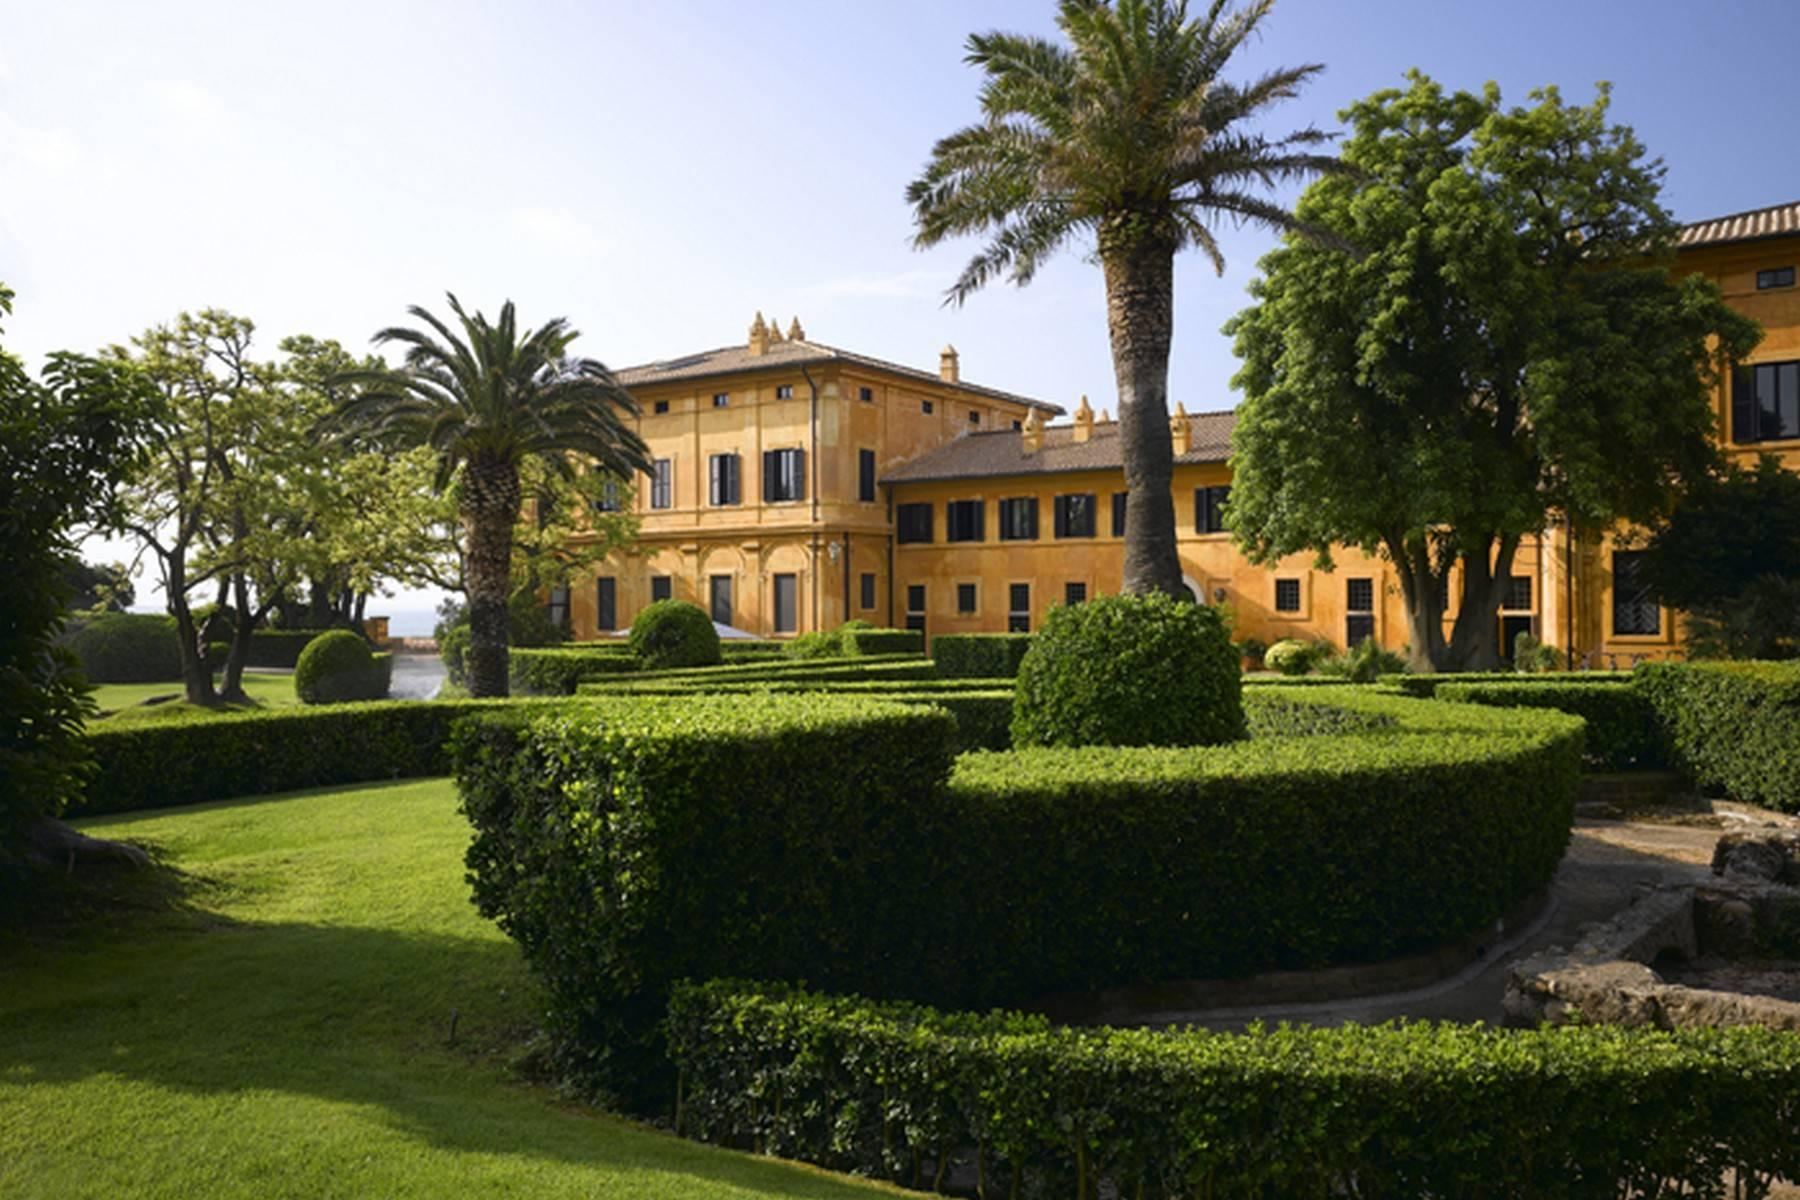 Waterfront, gorgeous and majestic historical mansion - 2